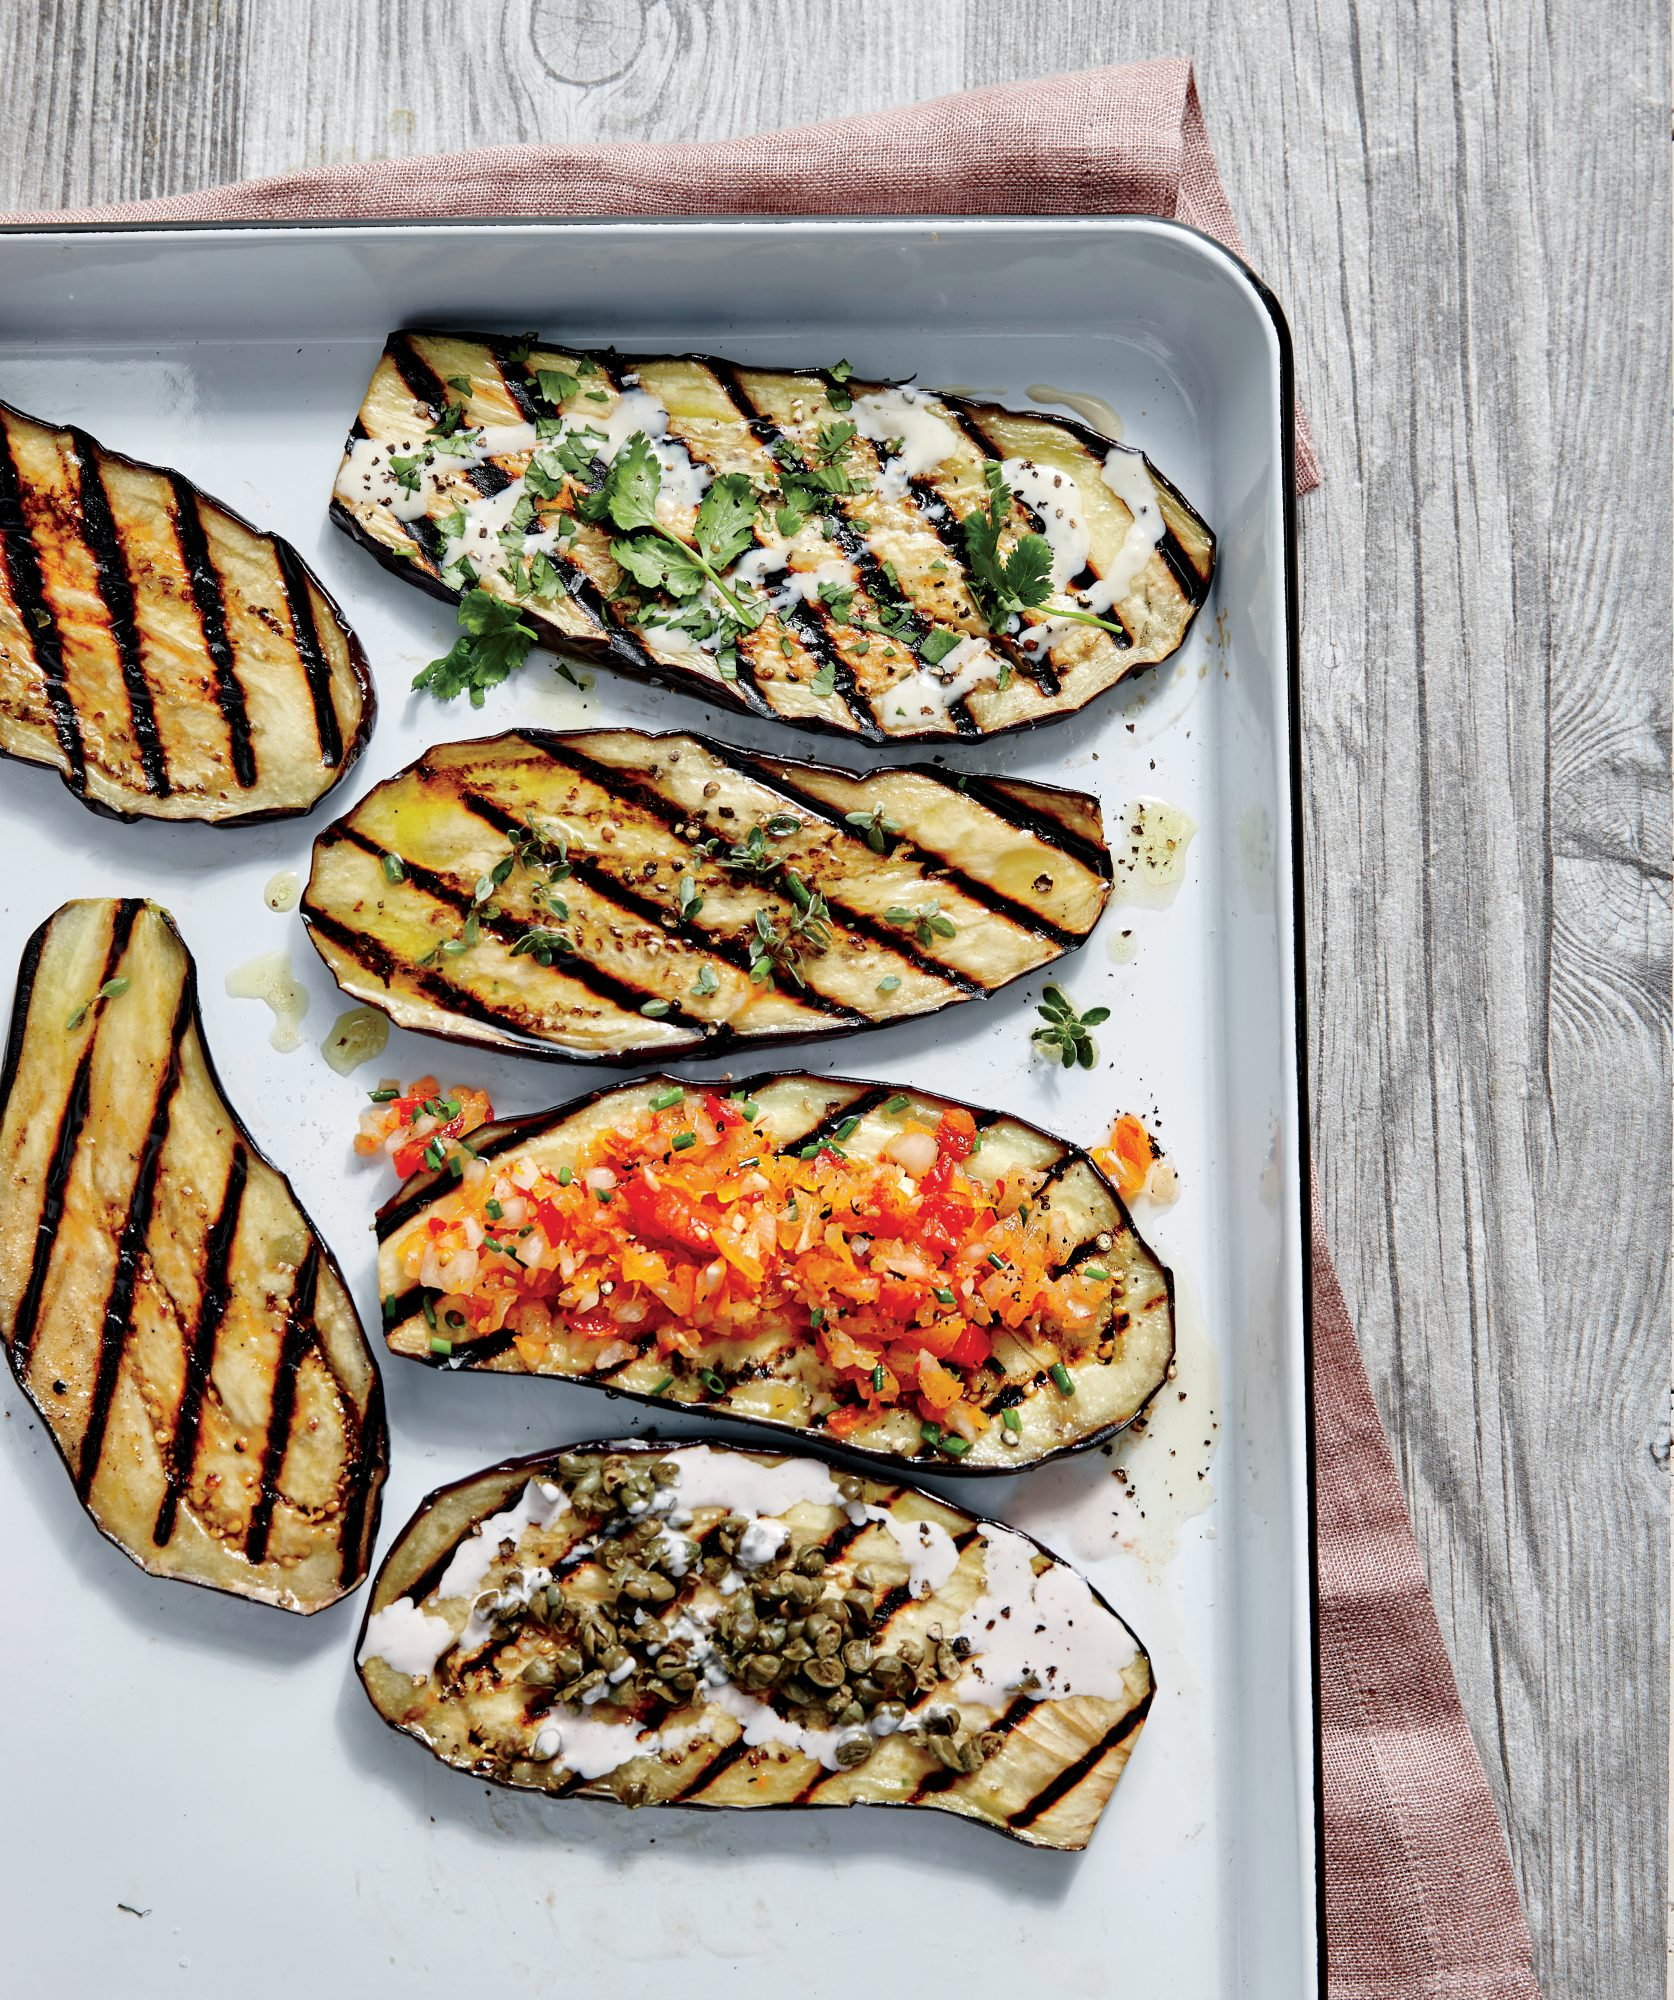 Grilled Eggplant Planks with Creole Salsa